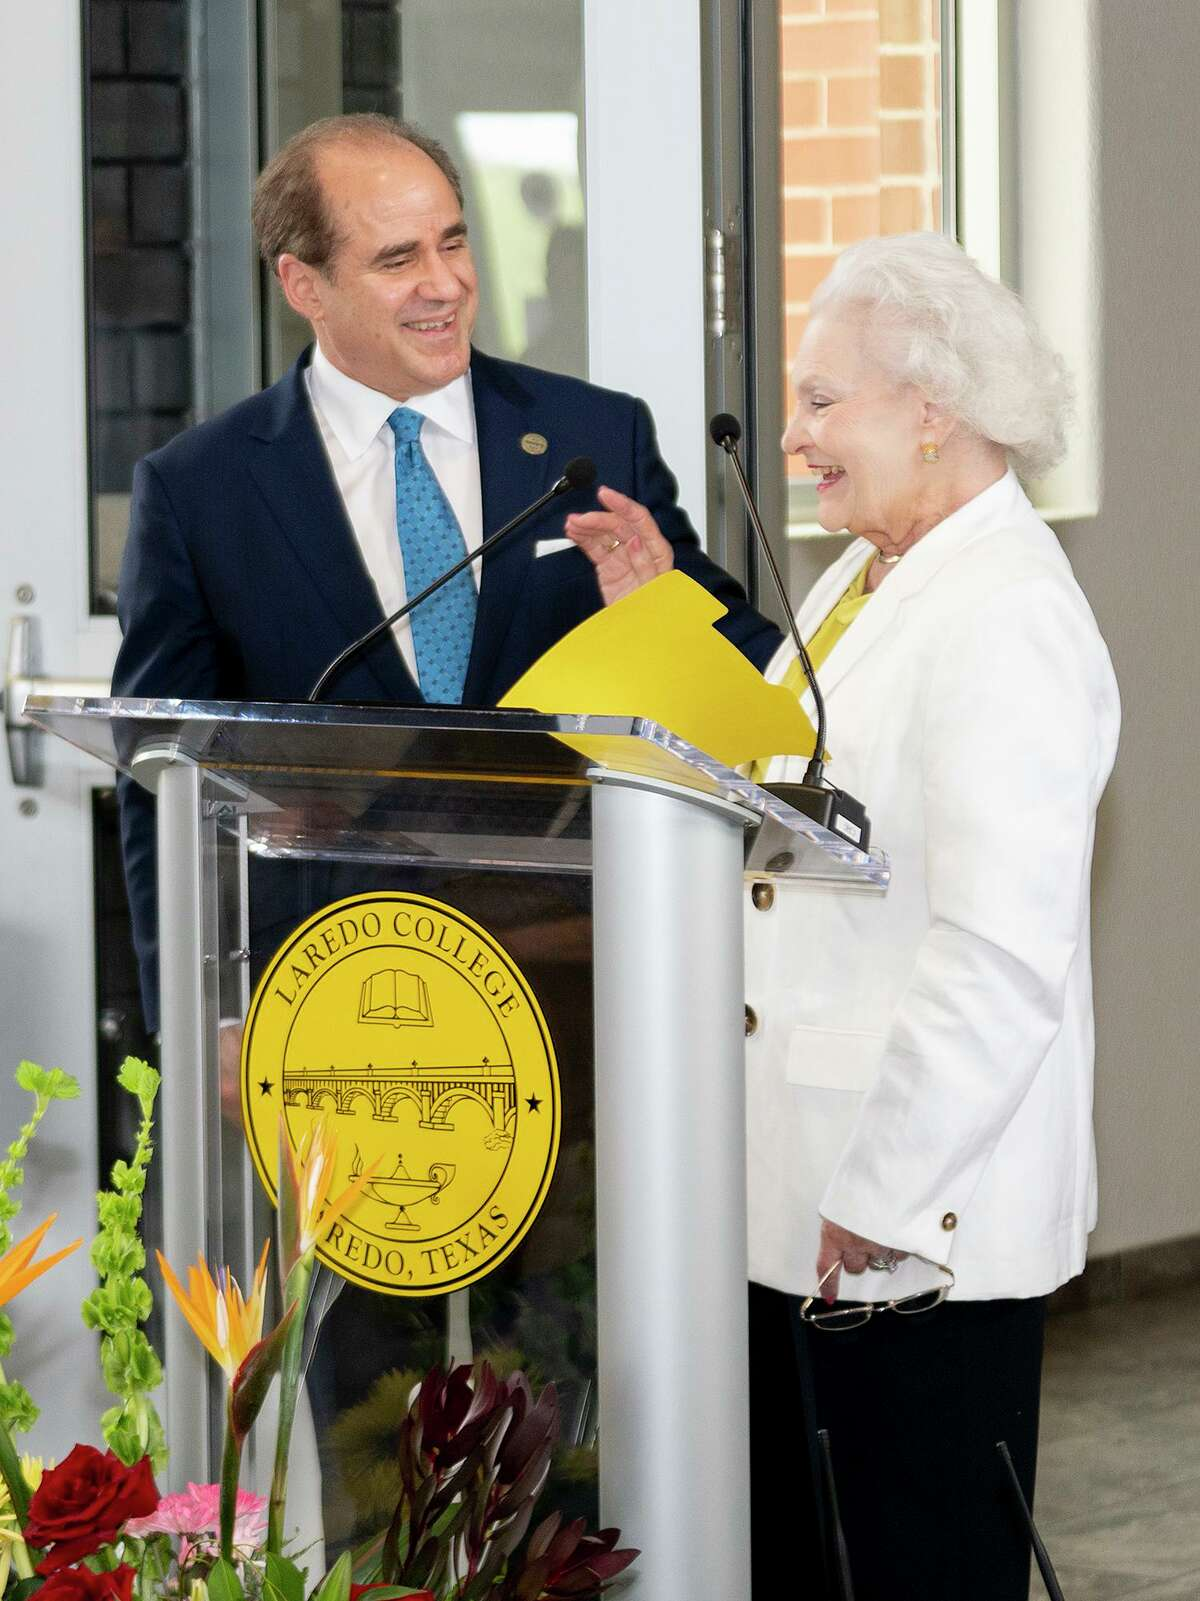 Laredo College President Ricardo Solis welcomes Laredo College Education Foundation President Millie Slaughter to the podium for her remarks Tuesday, June 29, 2021, during Laredo College's Grand Opening Ceremony of the College of Health Sciences located at the South Campus.